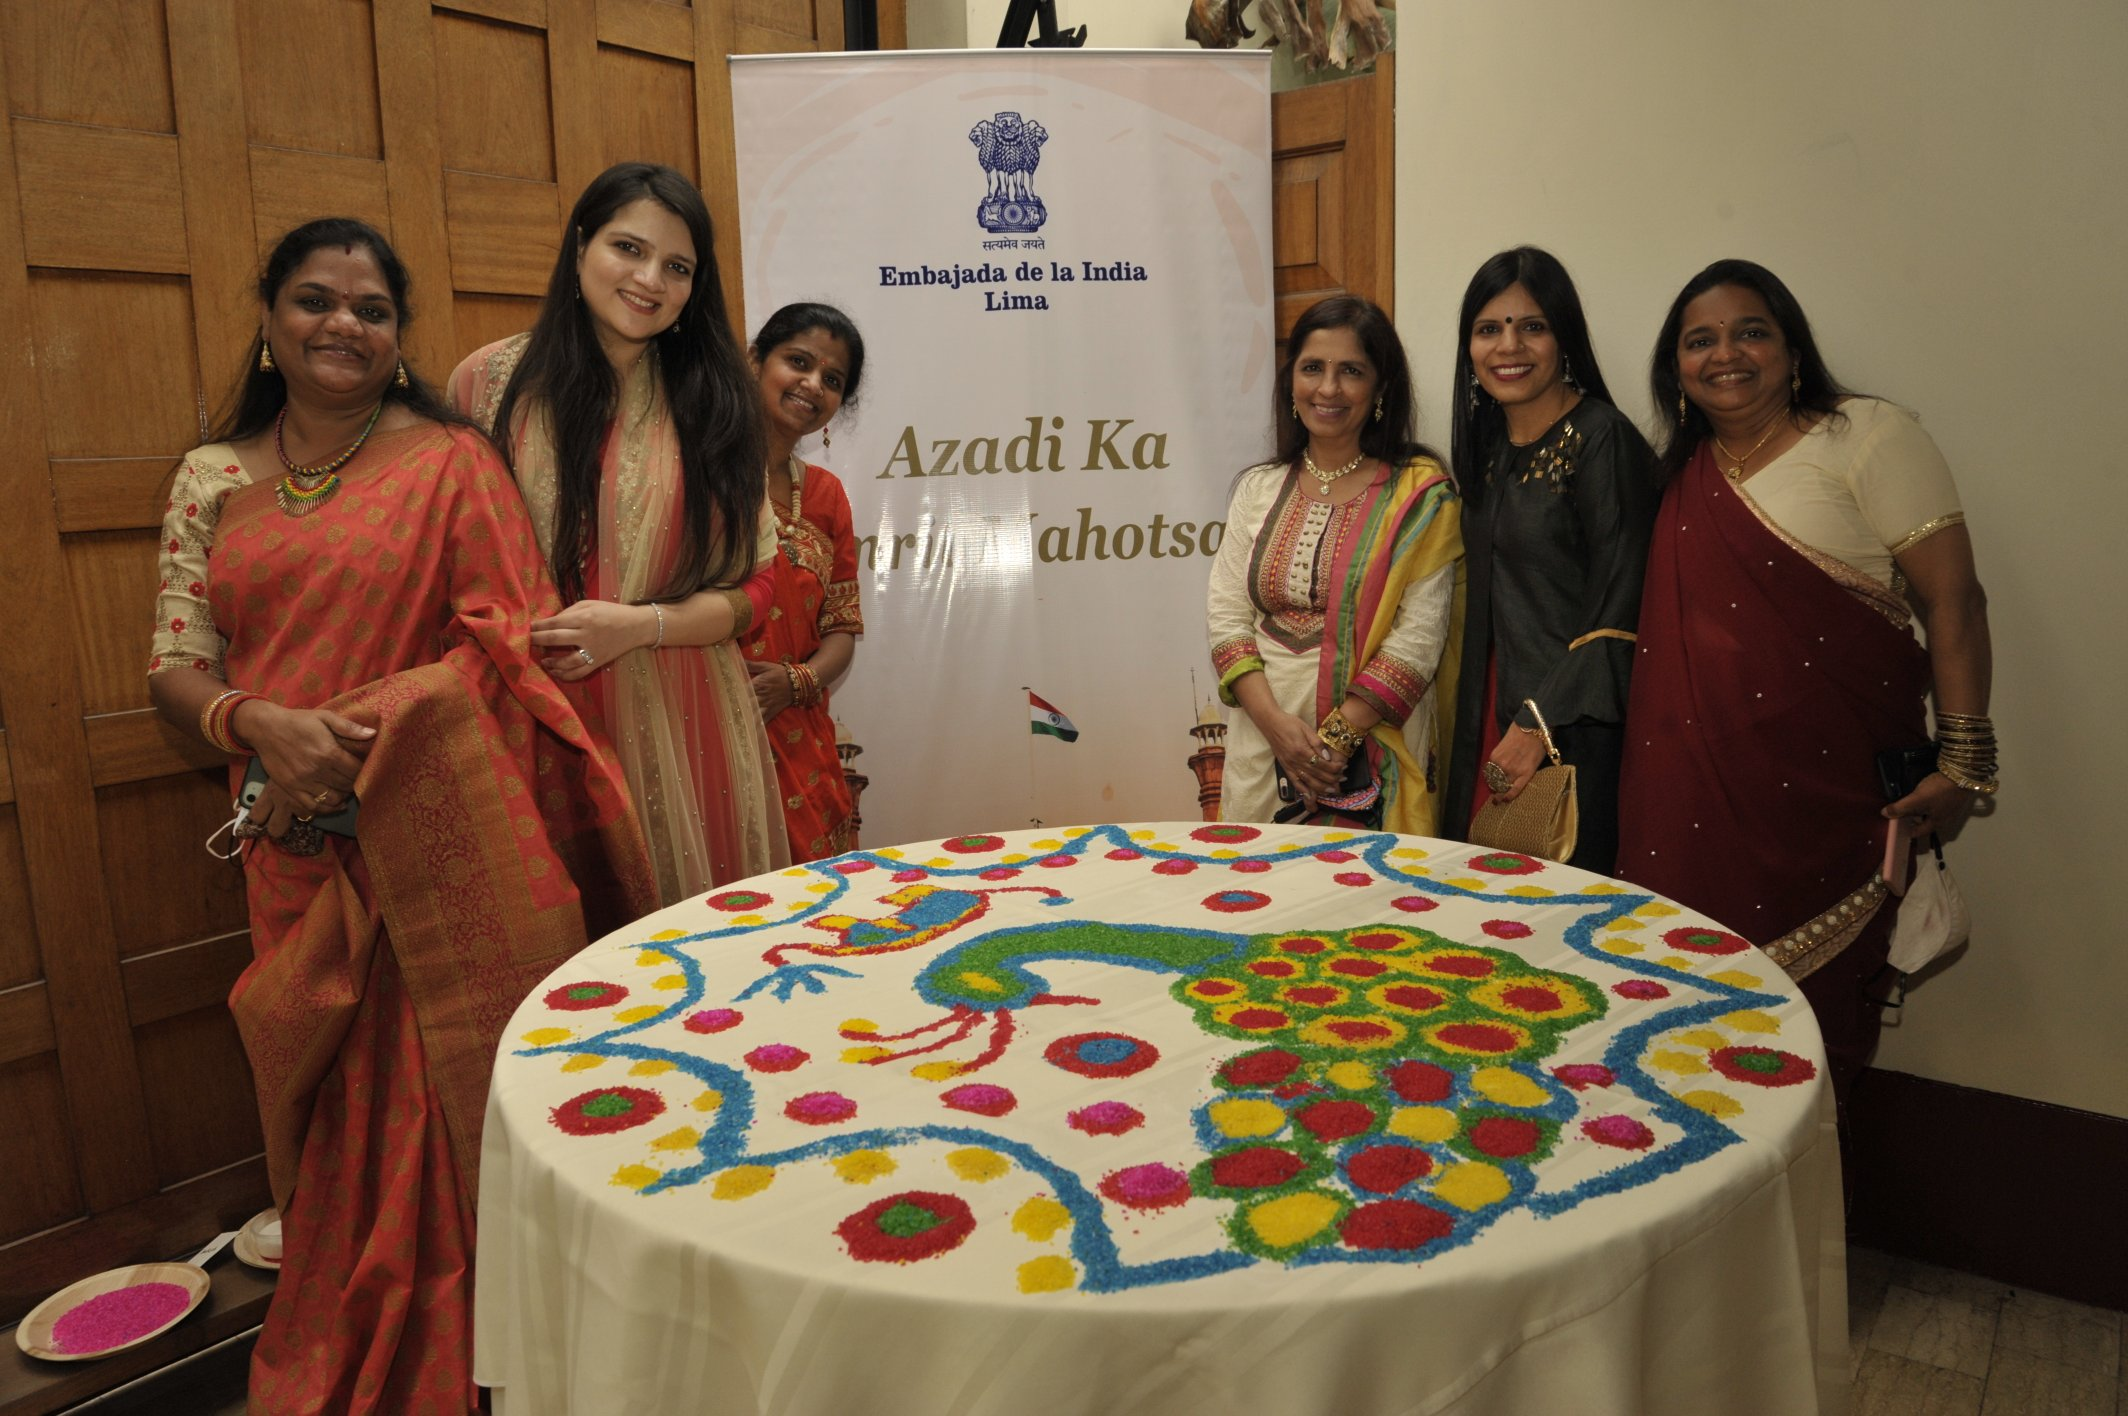 #AzadiKaAmritMahotsav celebrations during an #IndiaWeek highlighted 'India: A Land of Festivals'. Event organsied by @eoilima created a festive atmosphere with colours (Rangoli), traditional dance (Dandiya), music & food.